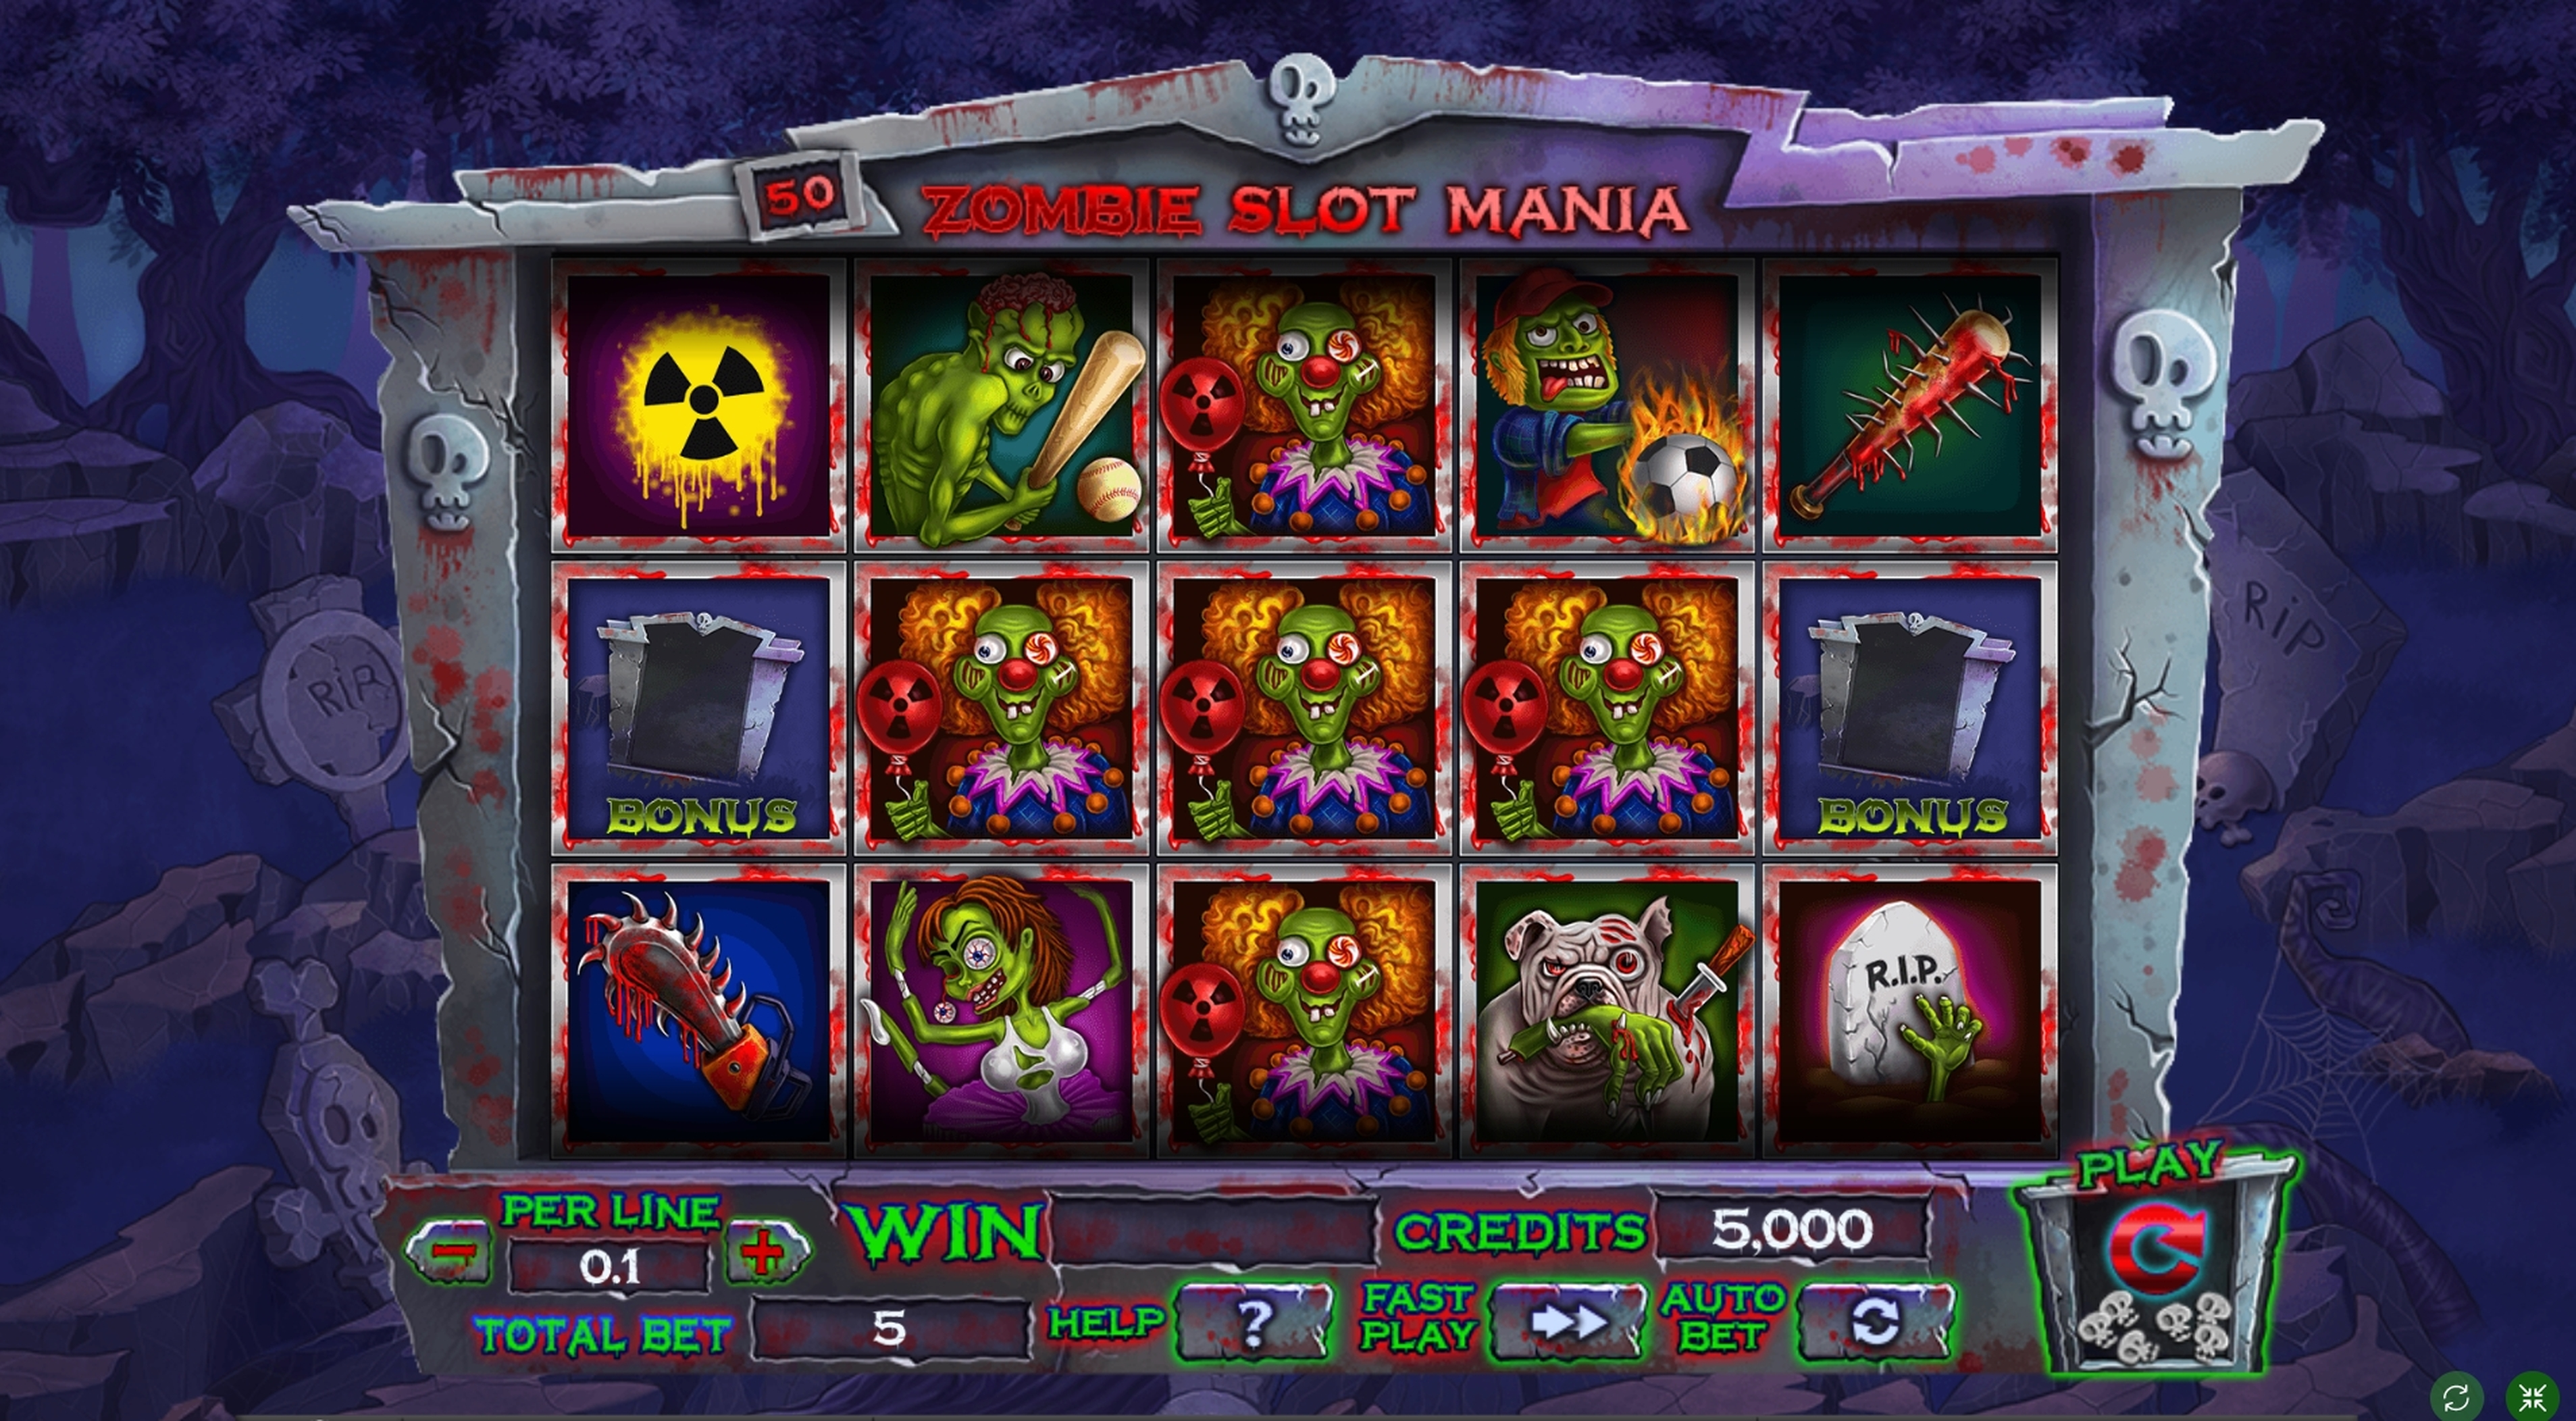 Reels in Zombie slot mania Slot Game by Spinomenal